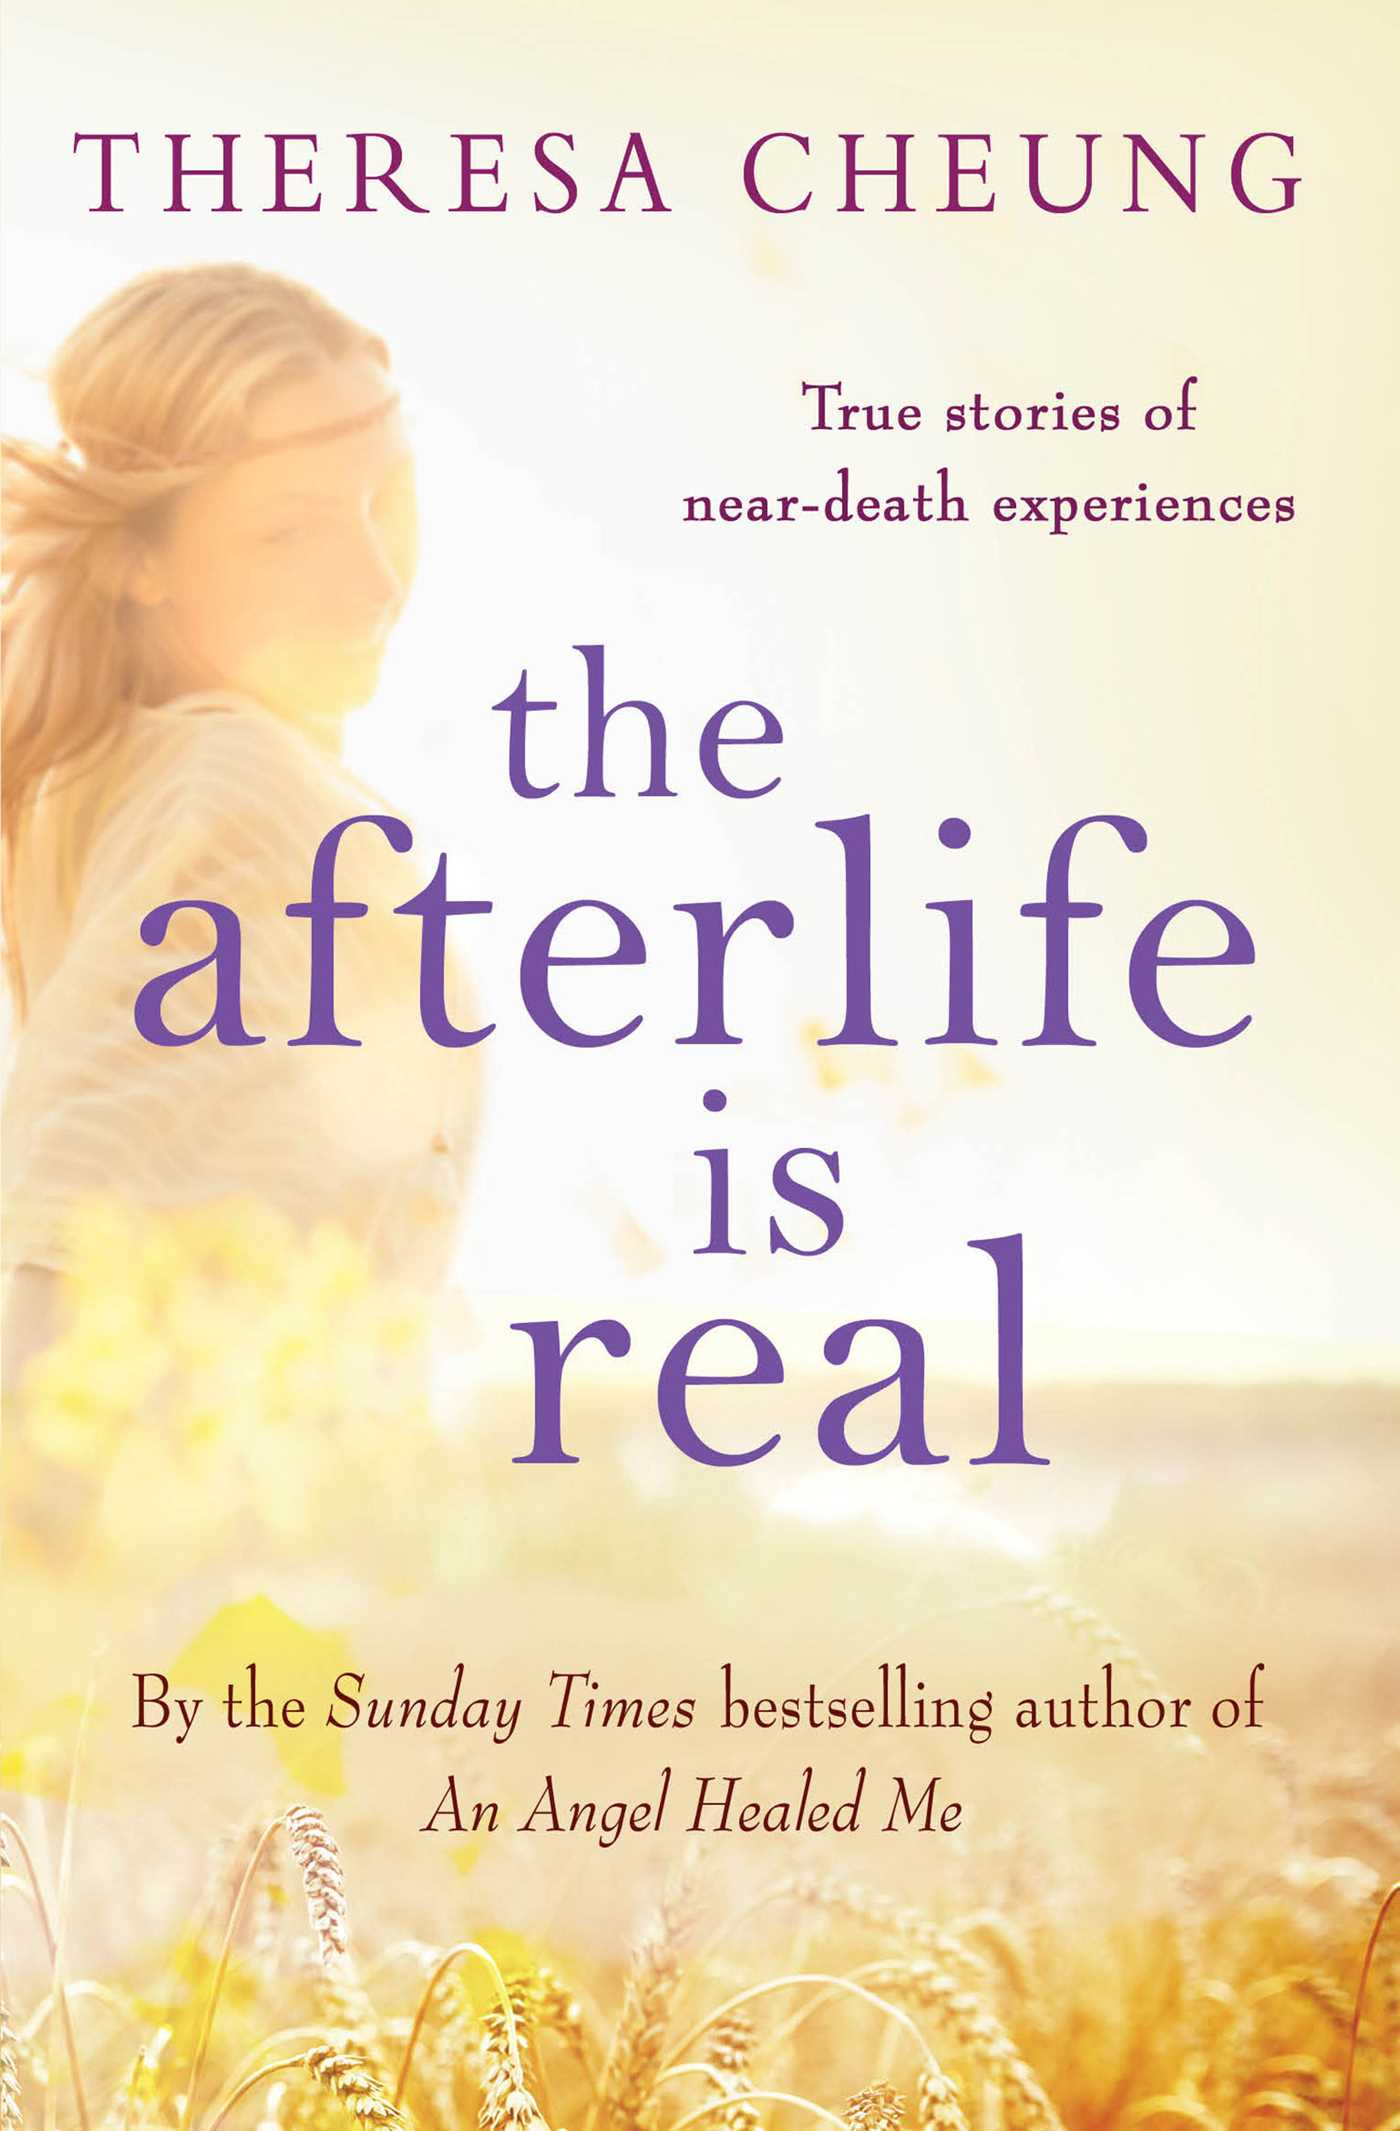 The afterlife is real 9781471112379 hr